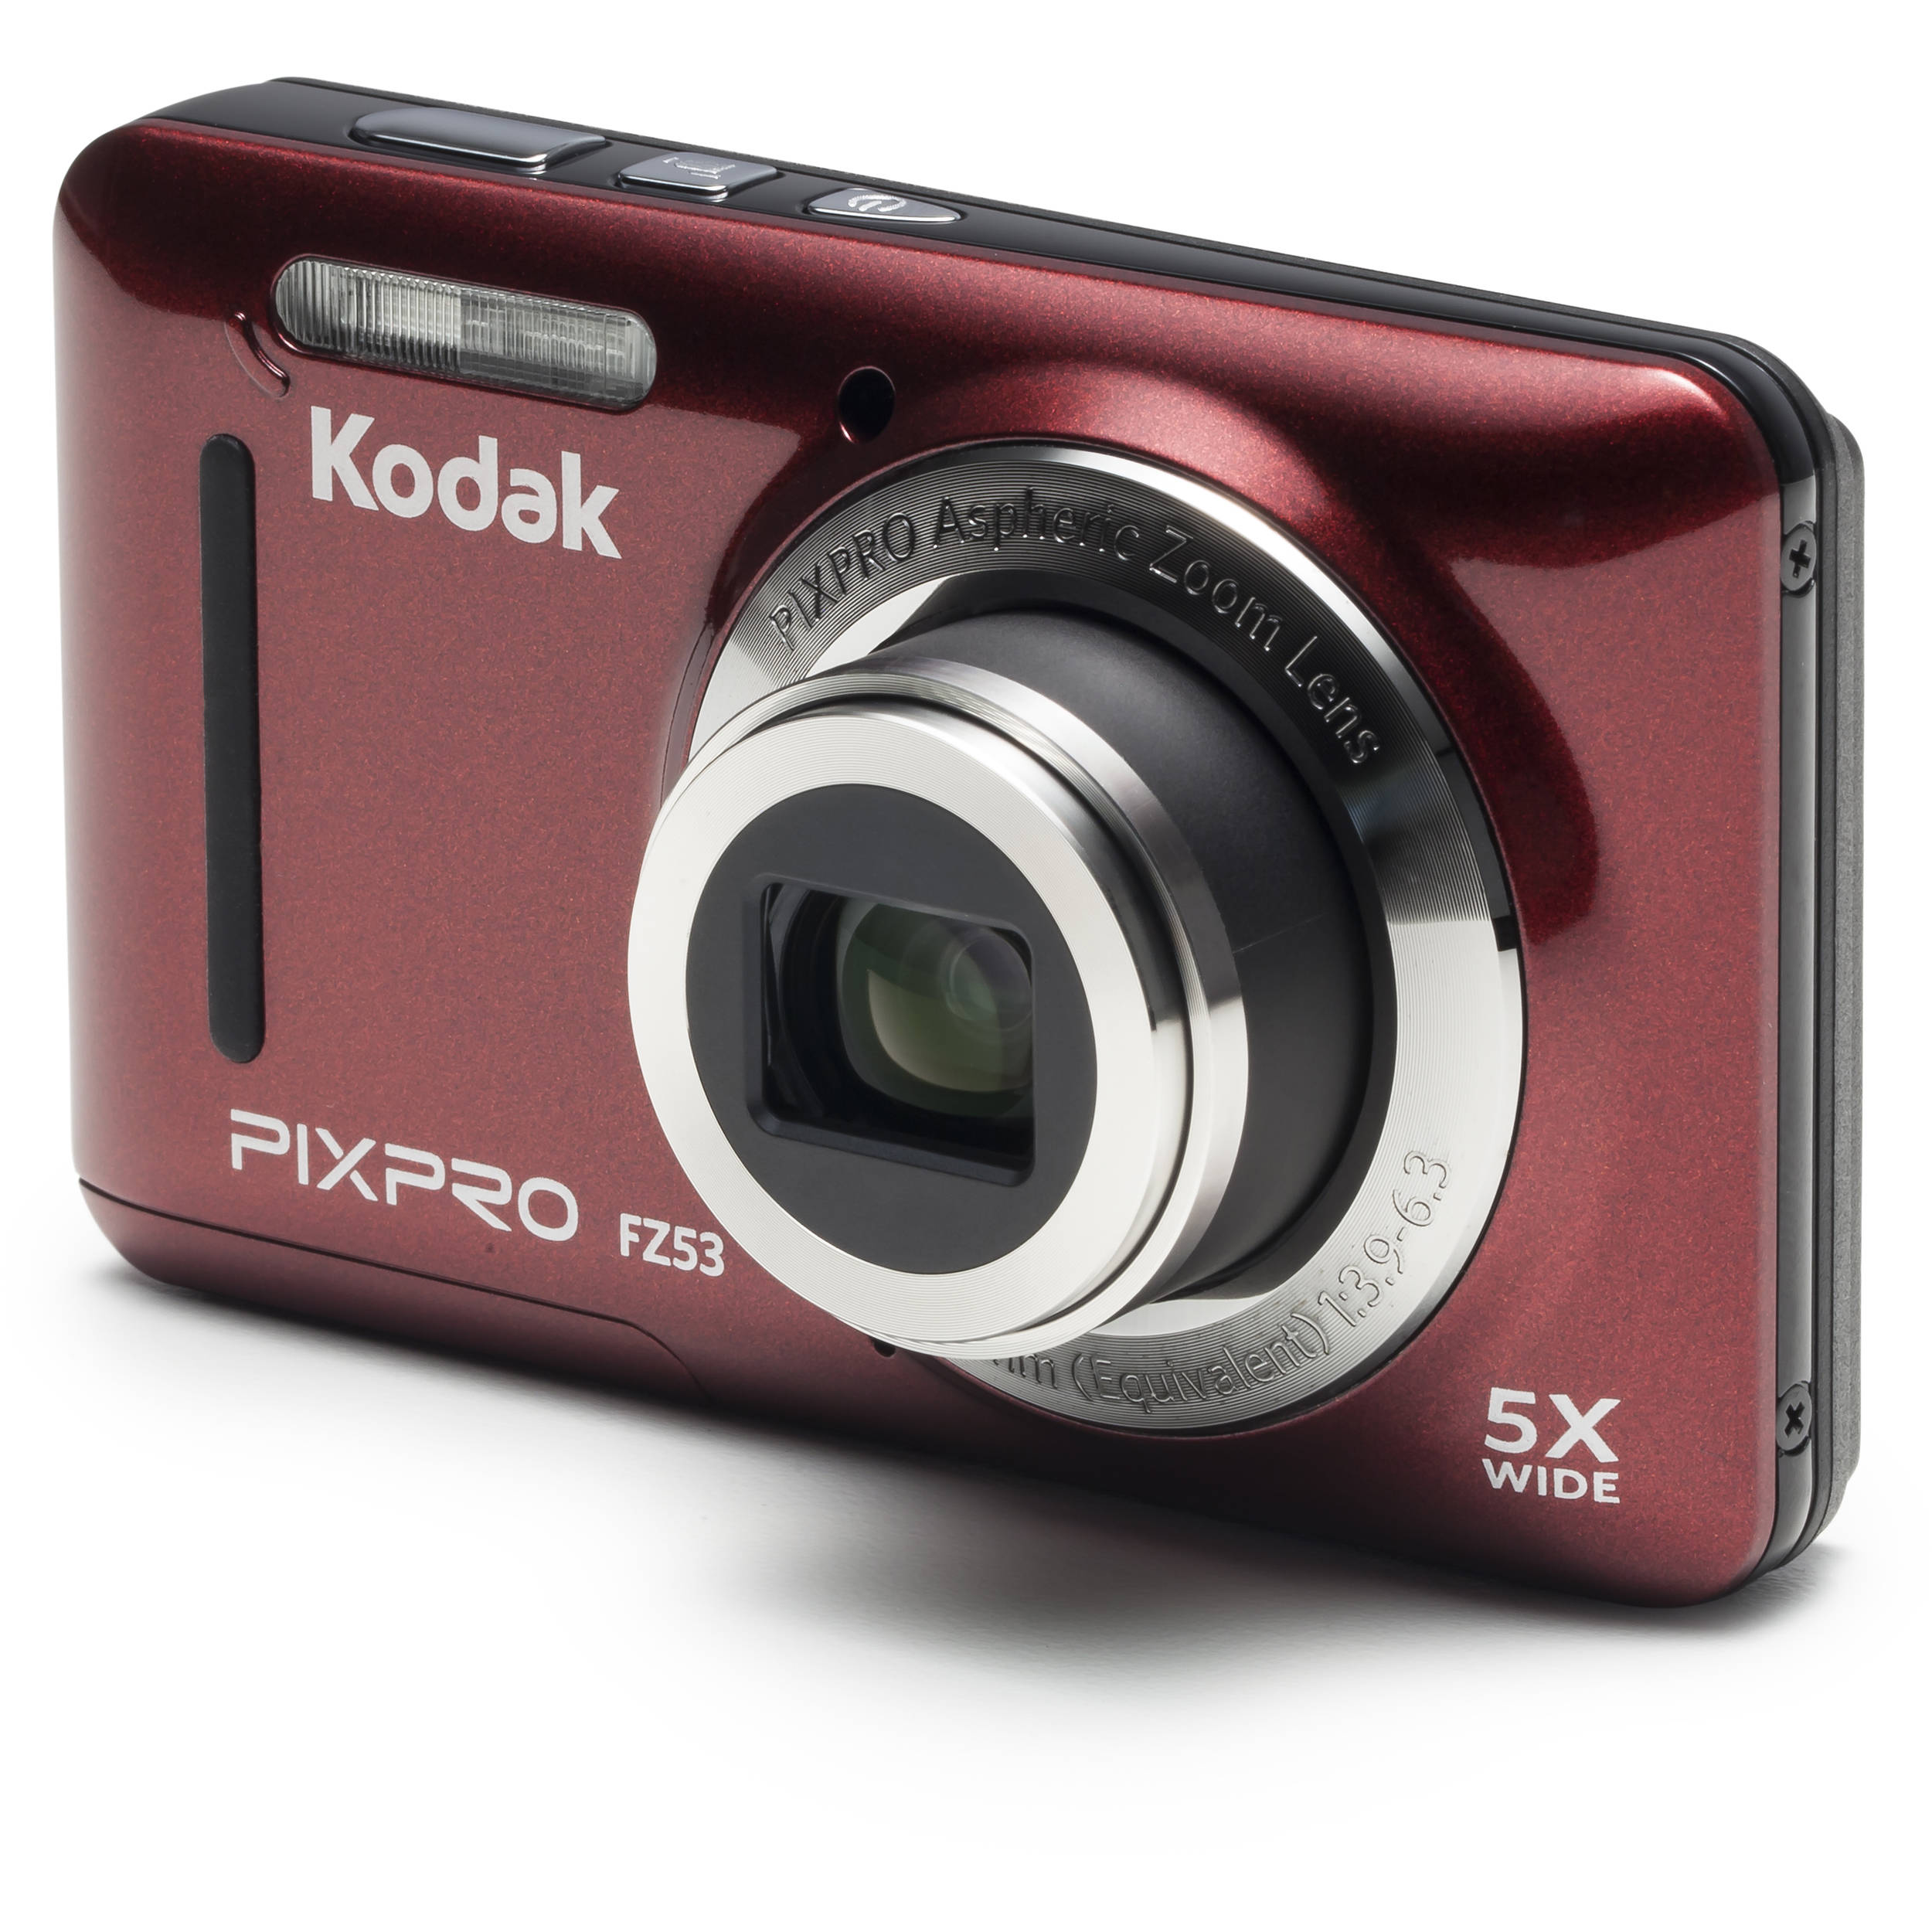 Kodak PIXPRO FZ53 Digital Camera (Red) FZ53-RD B&H Photo Video